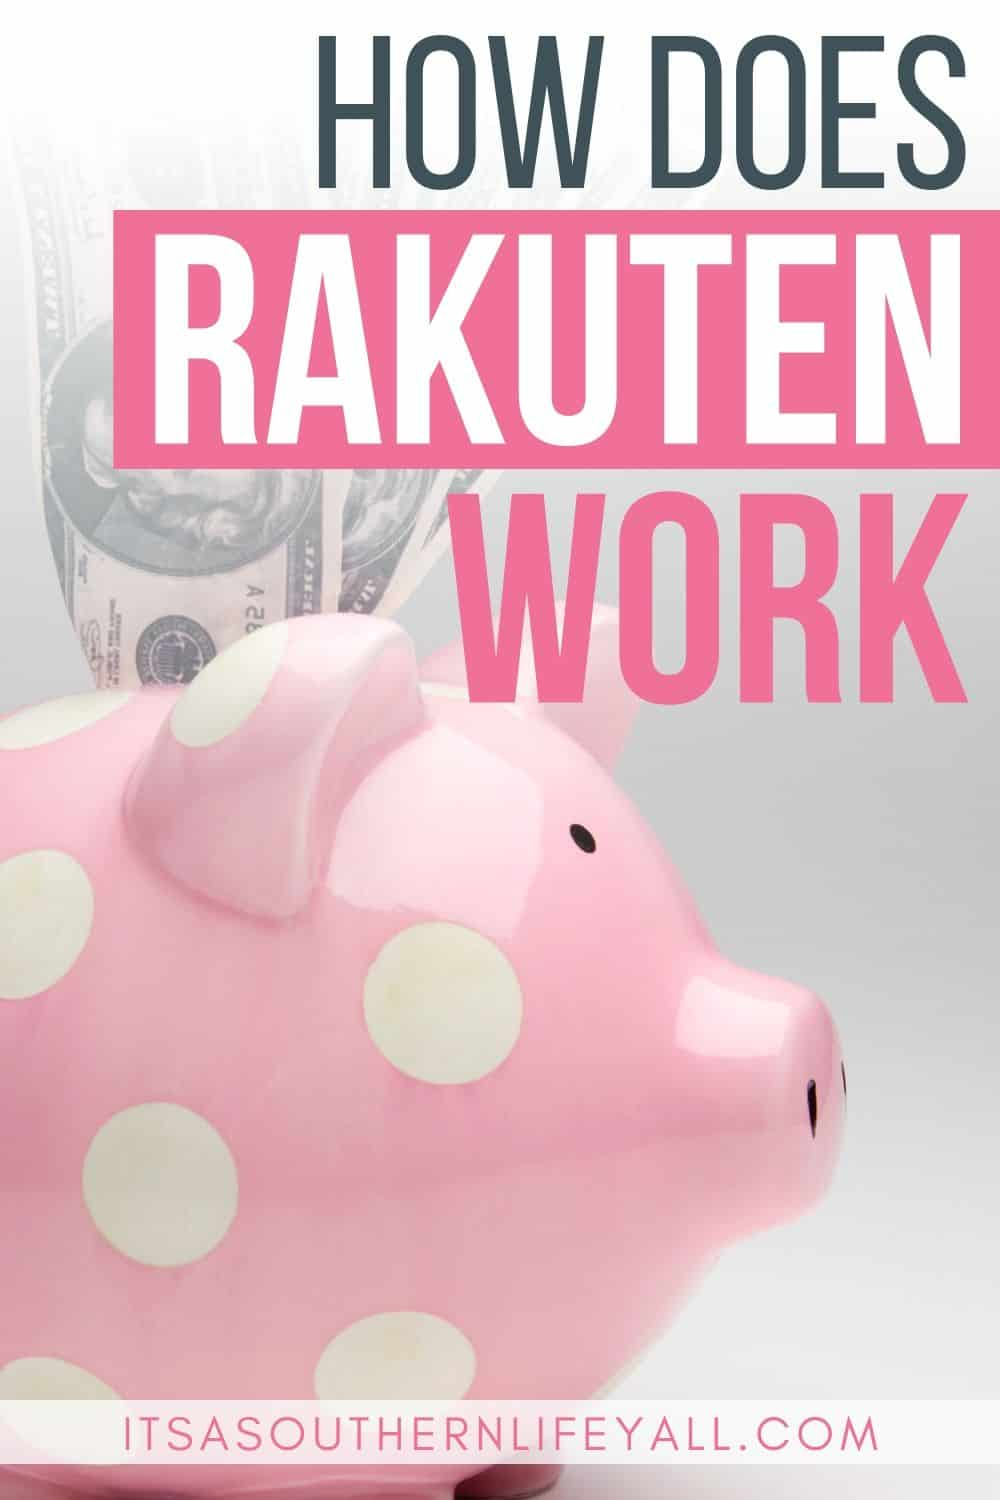 Pink polka dot piggy bank with cash with how does Rakuten work text overlay